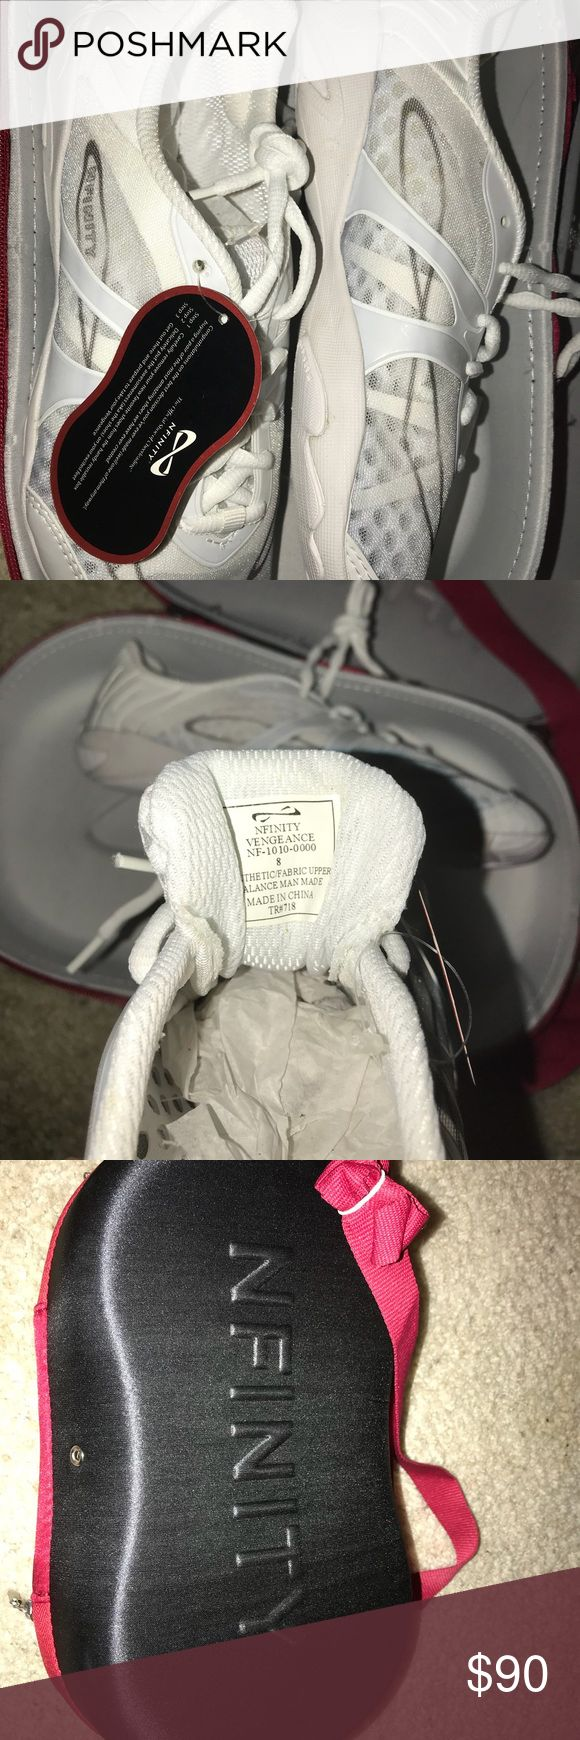 Nfinity Cheer Shoes Brand new with tags, never been worn, quit cheer before getting to wear. Size 8 women Shoes Athletic Shoes